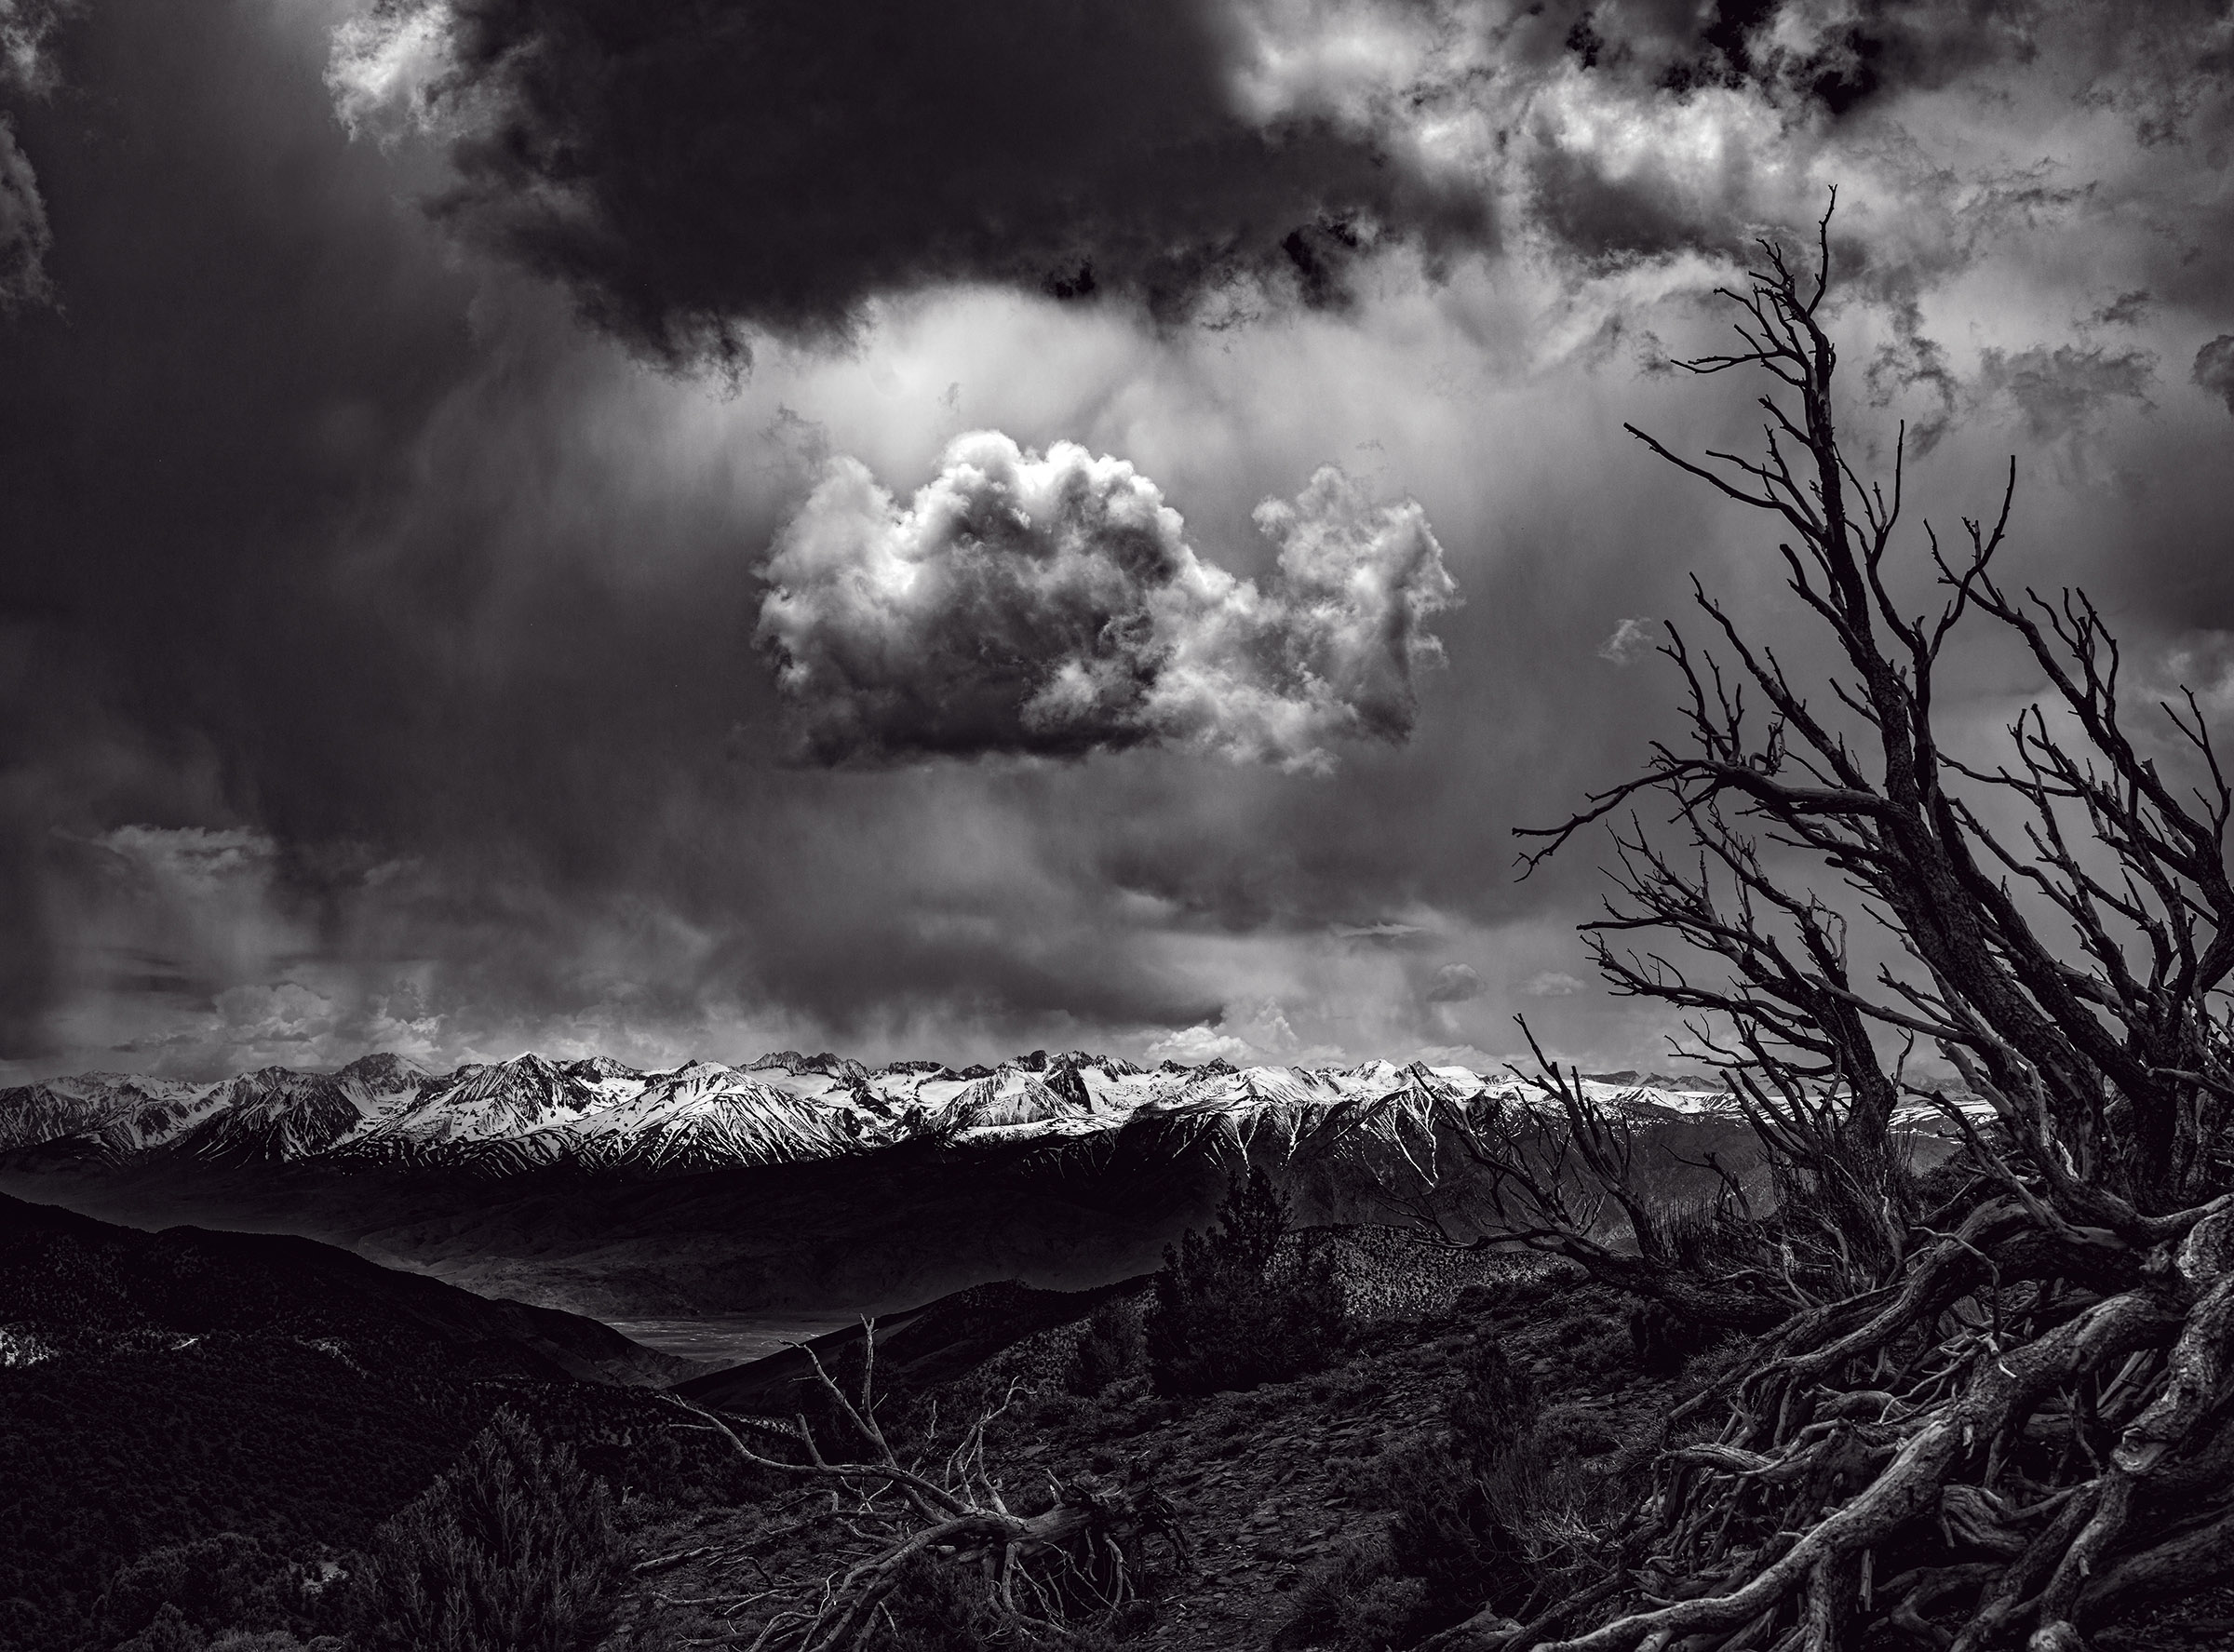 Sierras Big Pine  Mt Whitney shot from near the Ancient Bristlecone Pine Forest White Mountains by Great Landscape Photographer and Best Portrait Photographer Wick Beavers NYC LA Paris London Berlin Munich